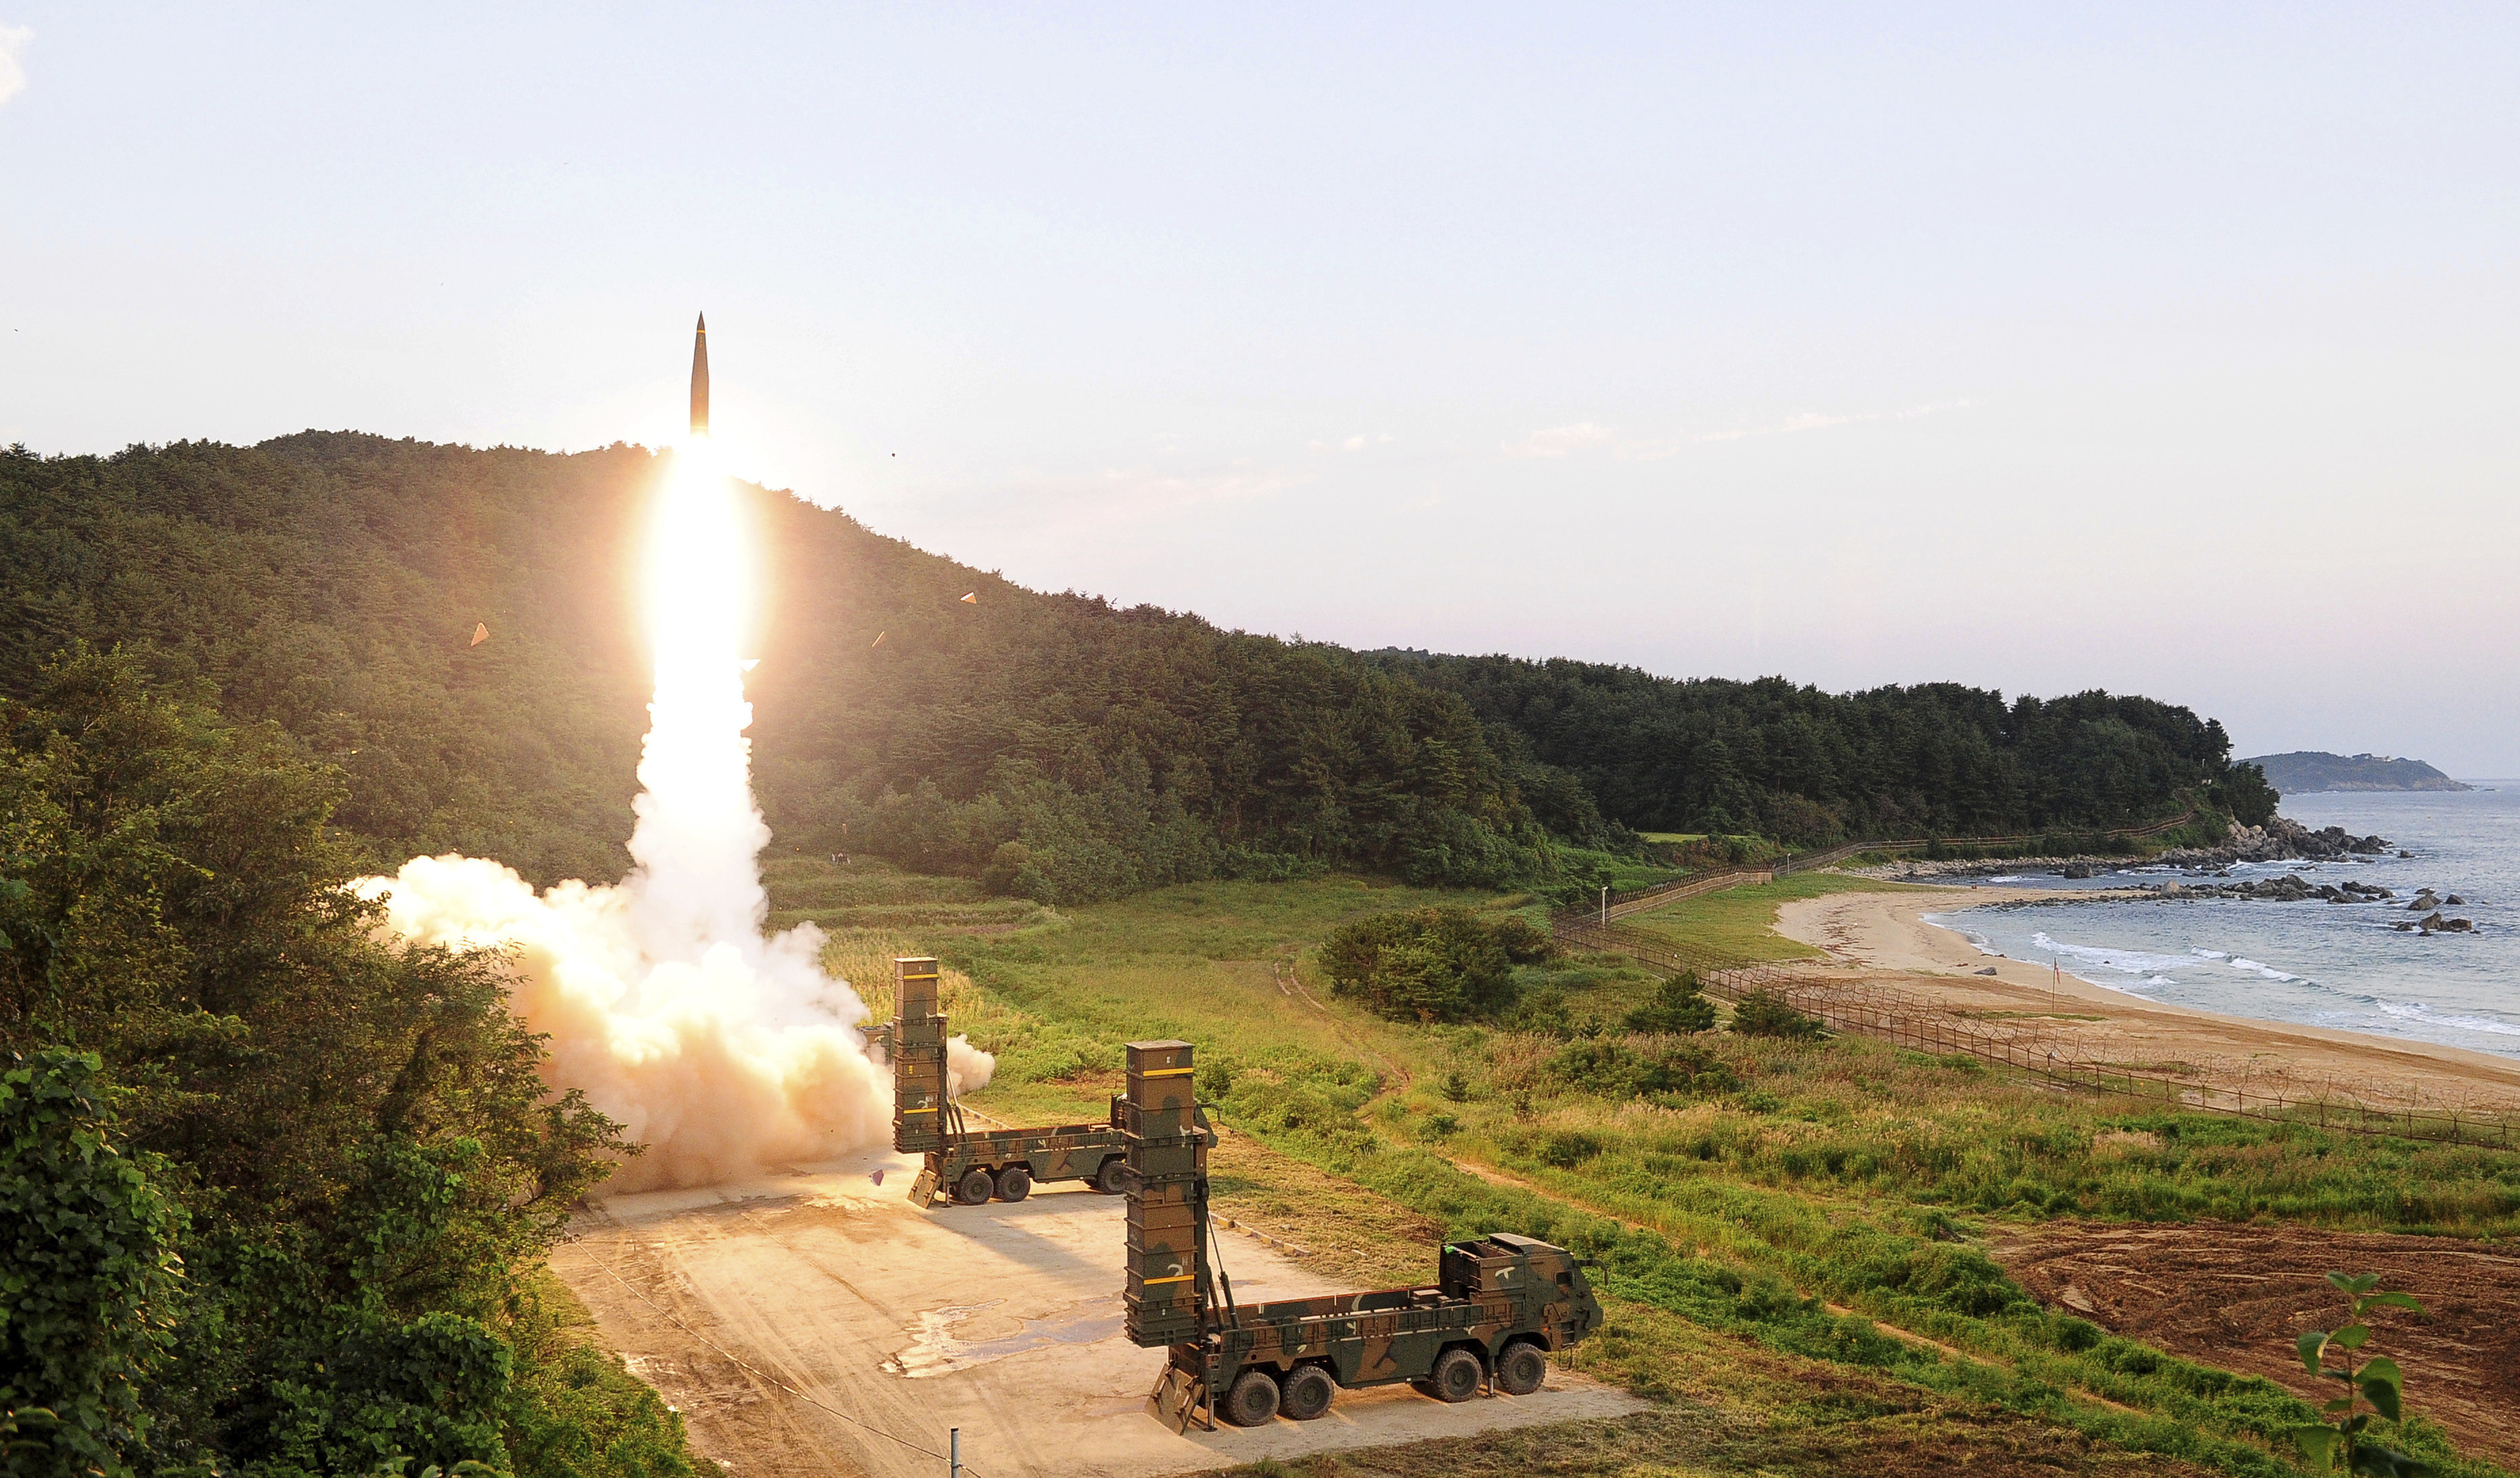 In this photo provided by South Korea Defense Ministry, South Korea's Hyunmoo II ballistic missile is fired during an exercise at an undisclosed location in South Korea, Sept. 4, 2017.